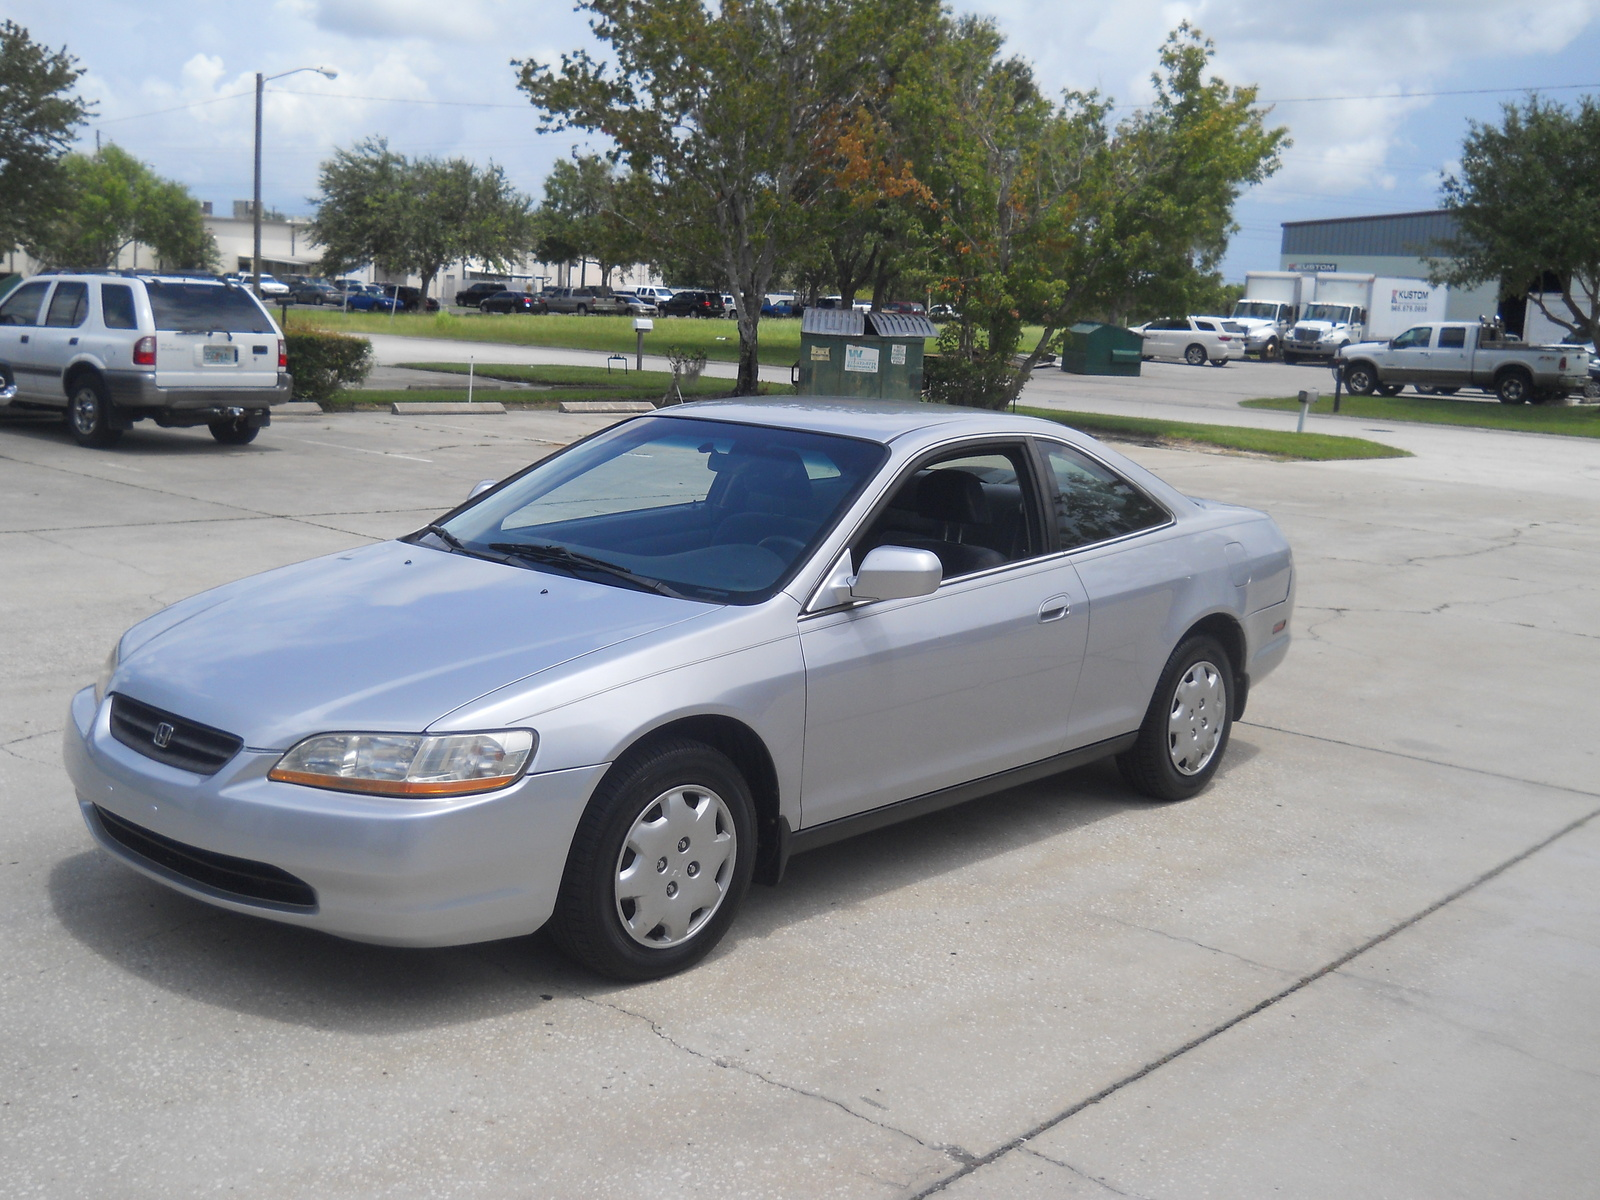 Picture of 2000 Honda Accord LX Coupe  exteriorHonda Accord 2000 Coupe